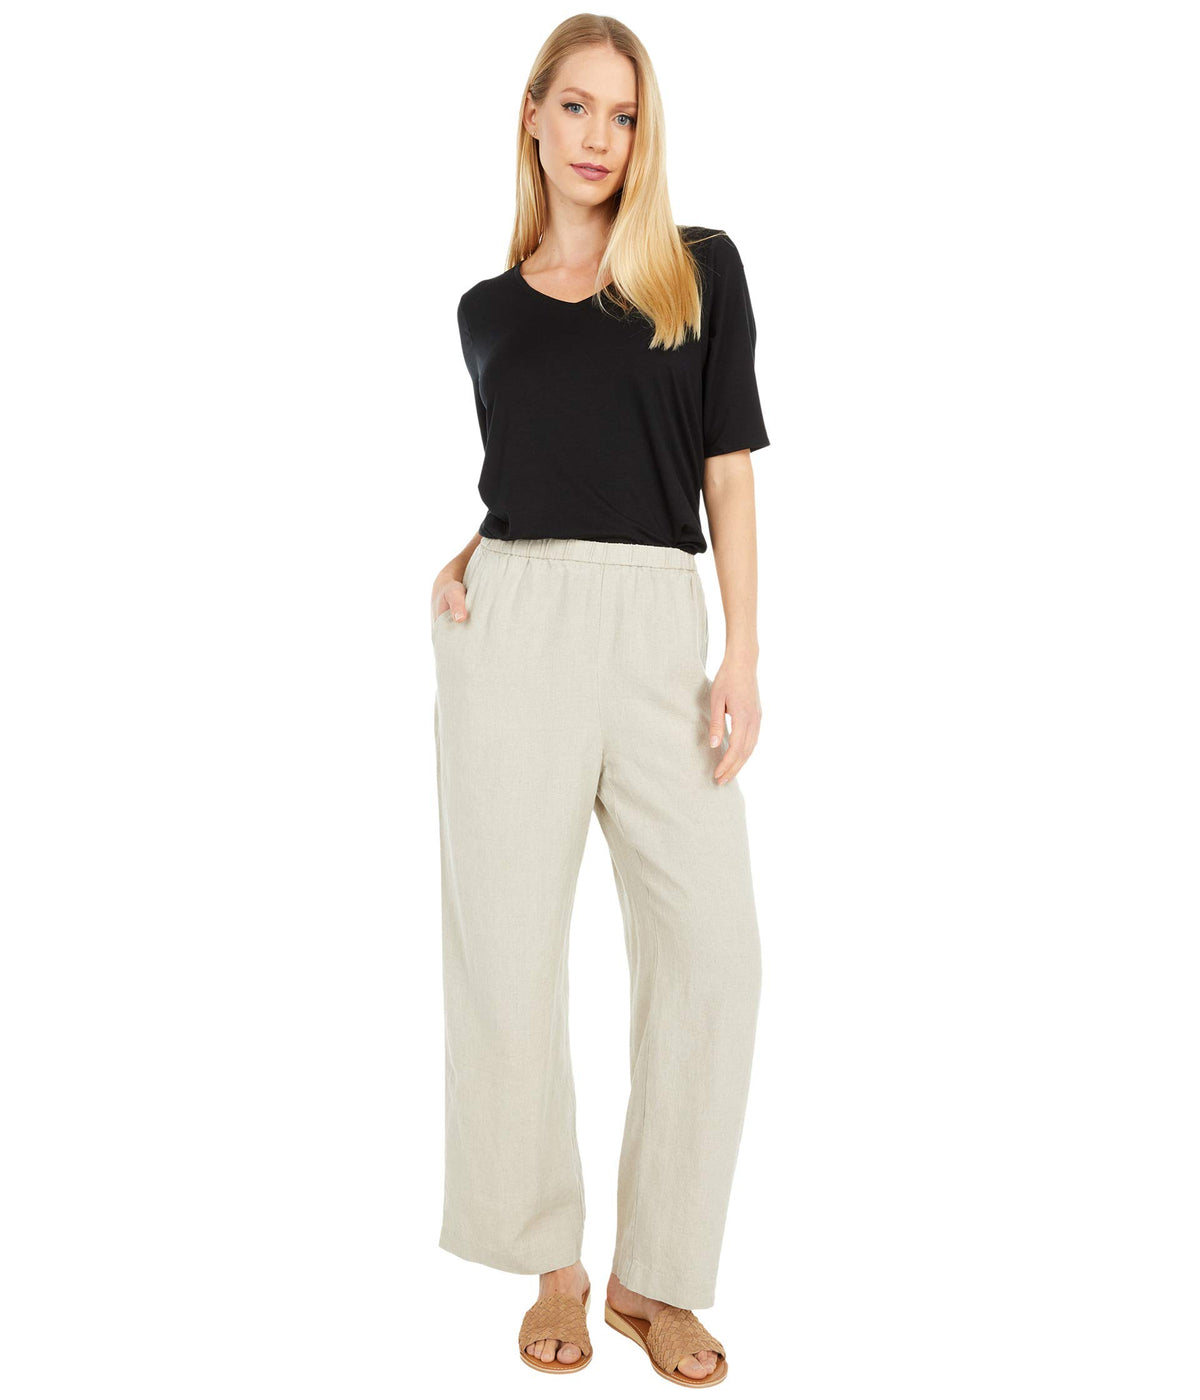 Ankle Length Straight Leg Pants